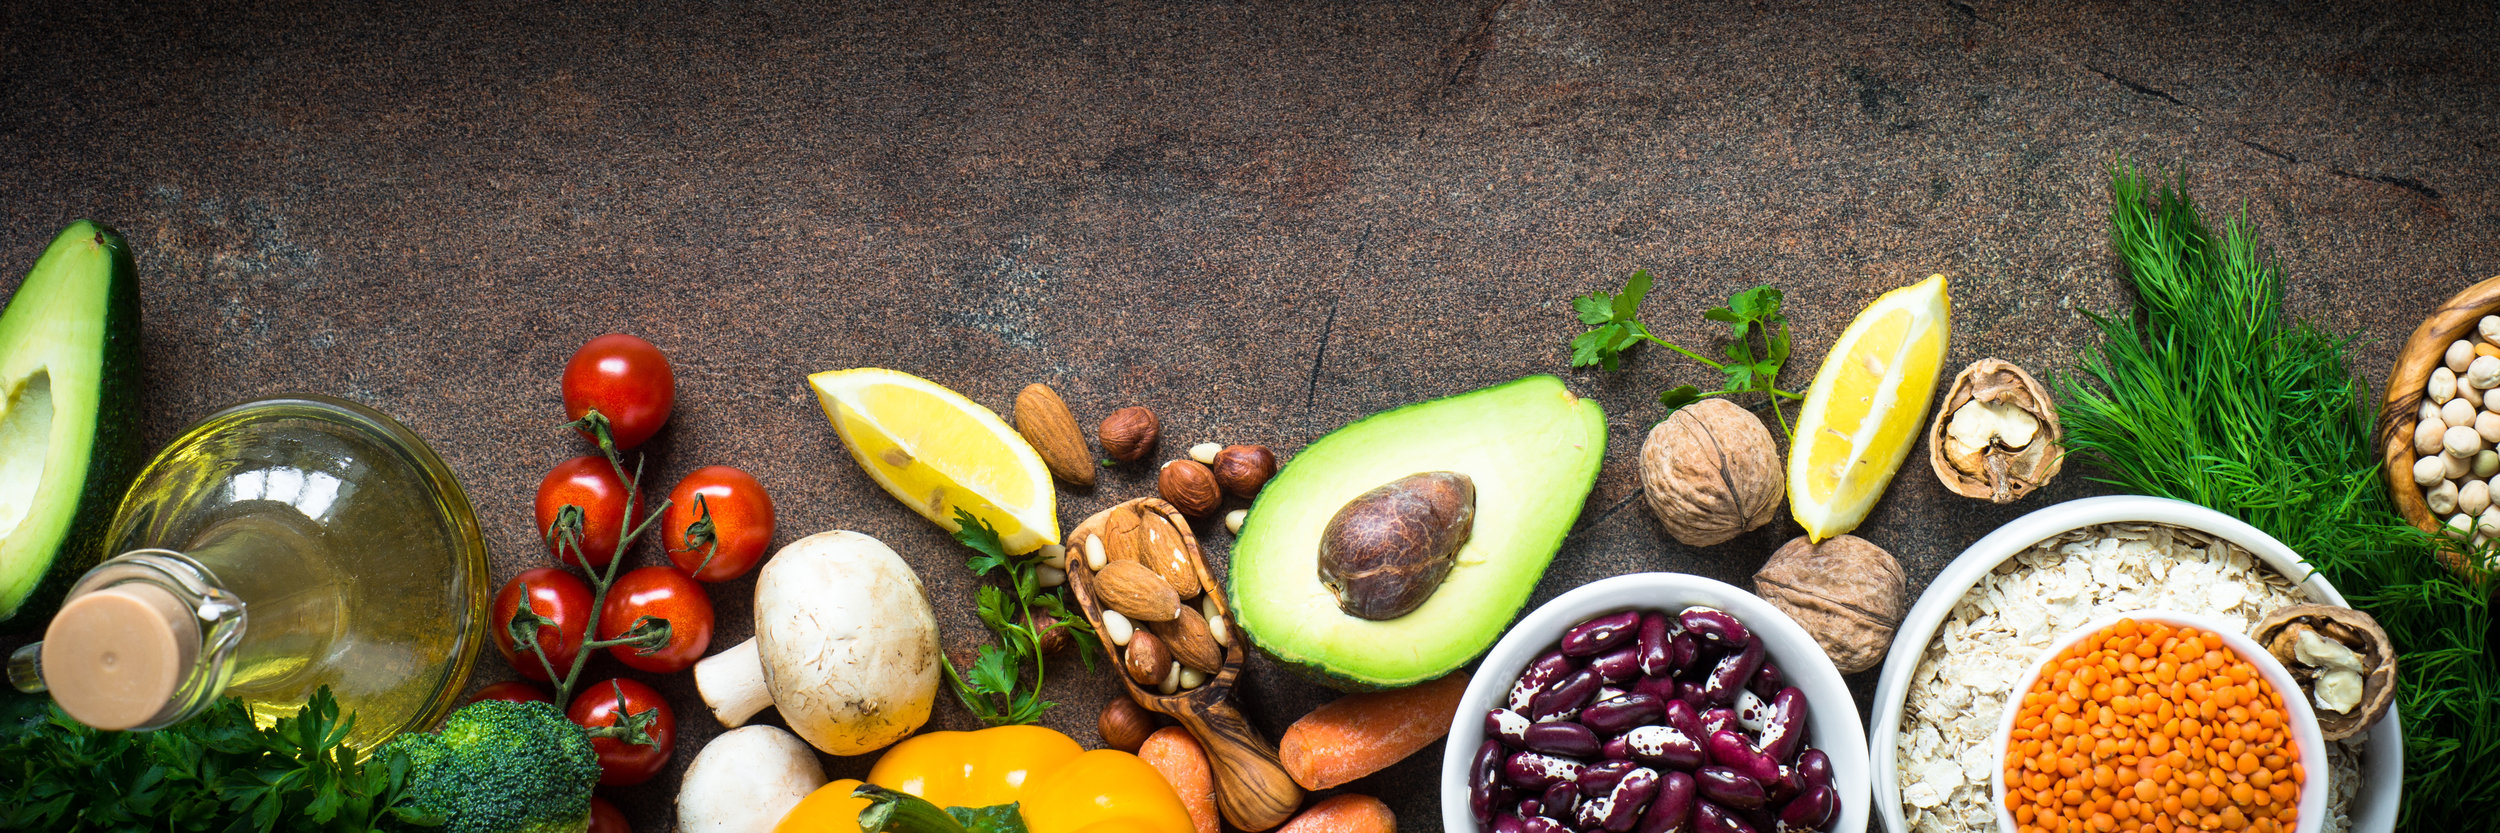 mixed foods AdobeStock_145208964.jpg